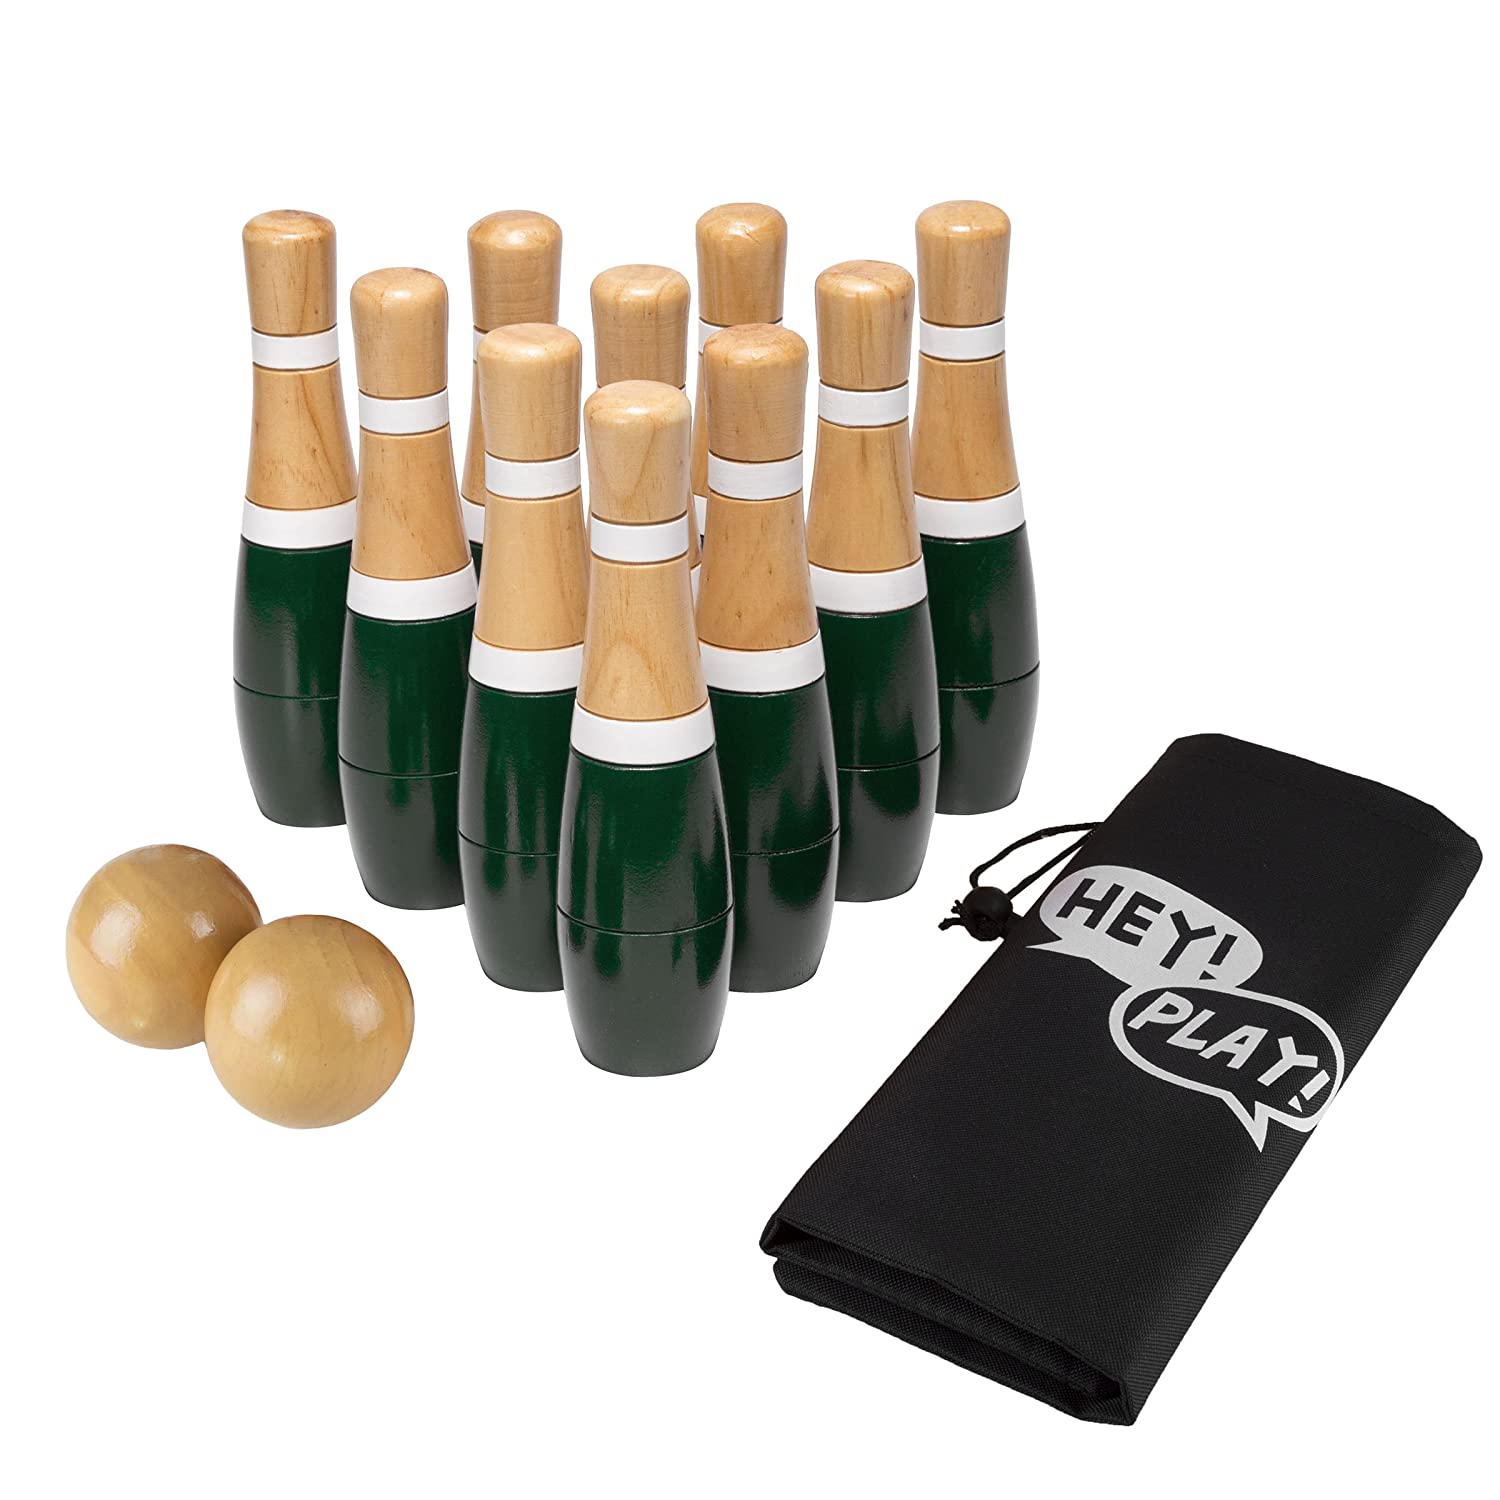 木製Lawn Bowling Set with Ten 8インチピンと2ボール – Includes Bonus Carryingバッグ。 B07BFJ923T グリーン